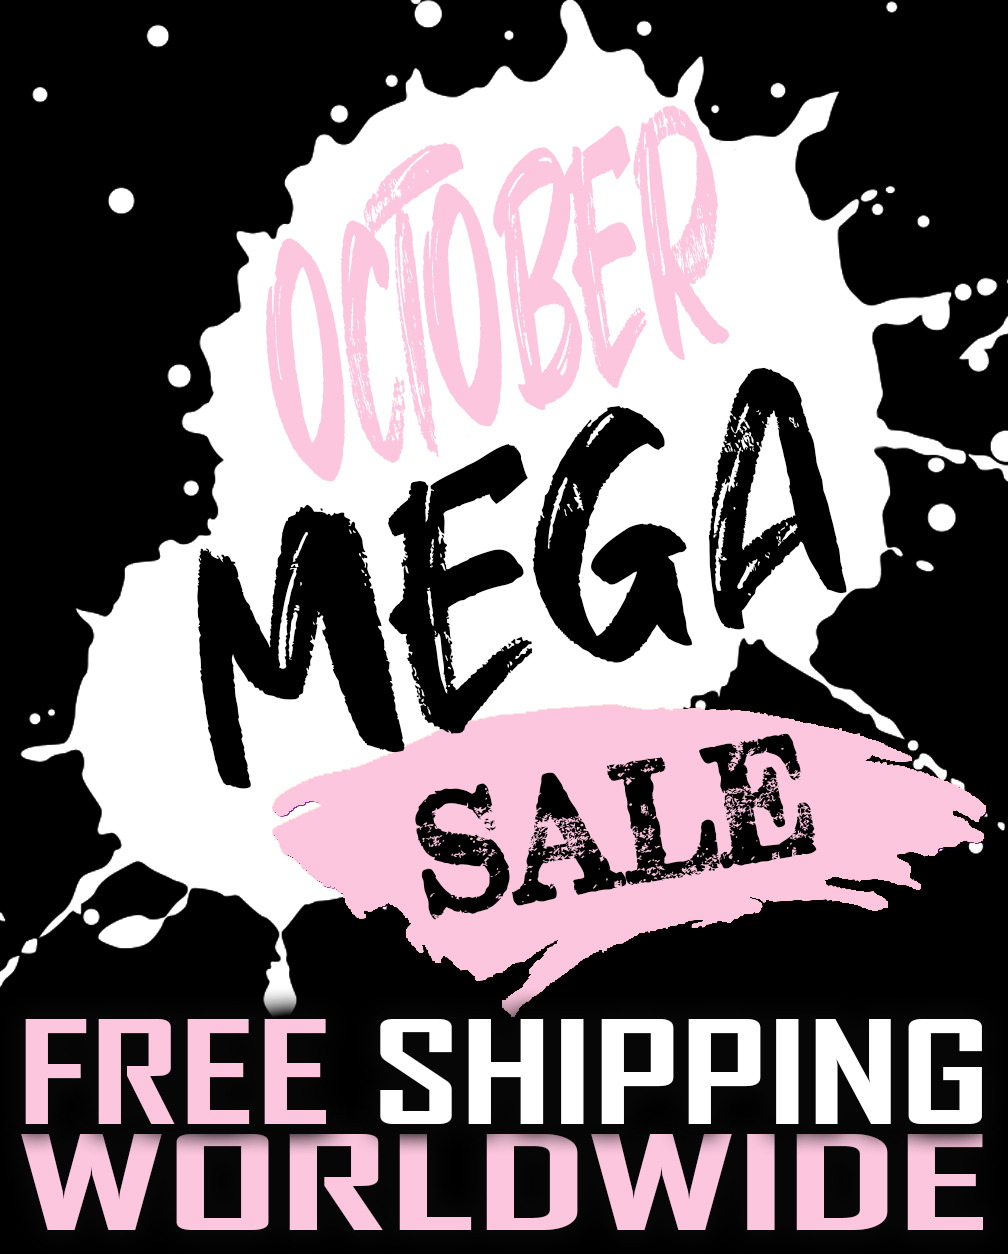 october-mega-sale-free-worldwide-shipping.jpg